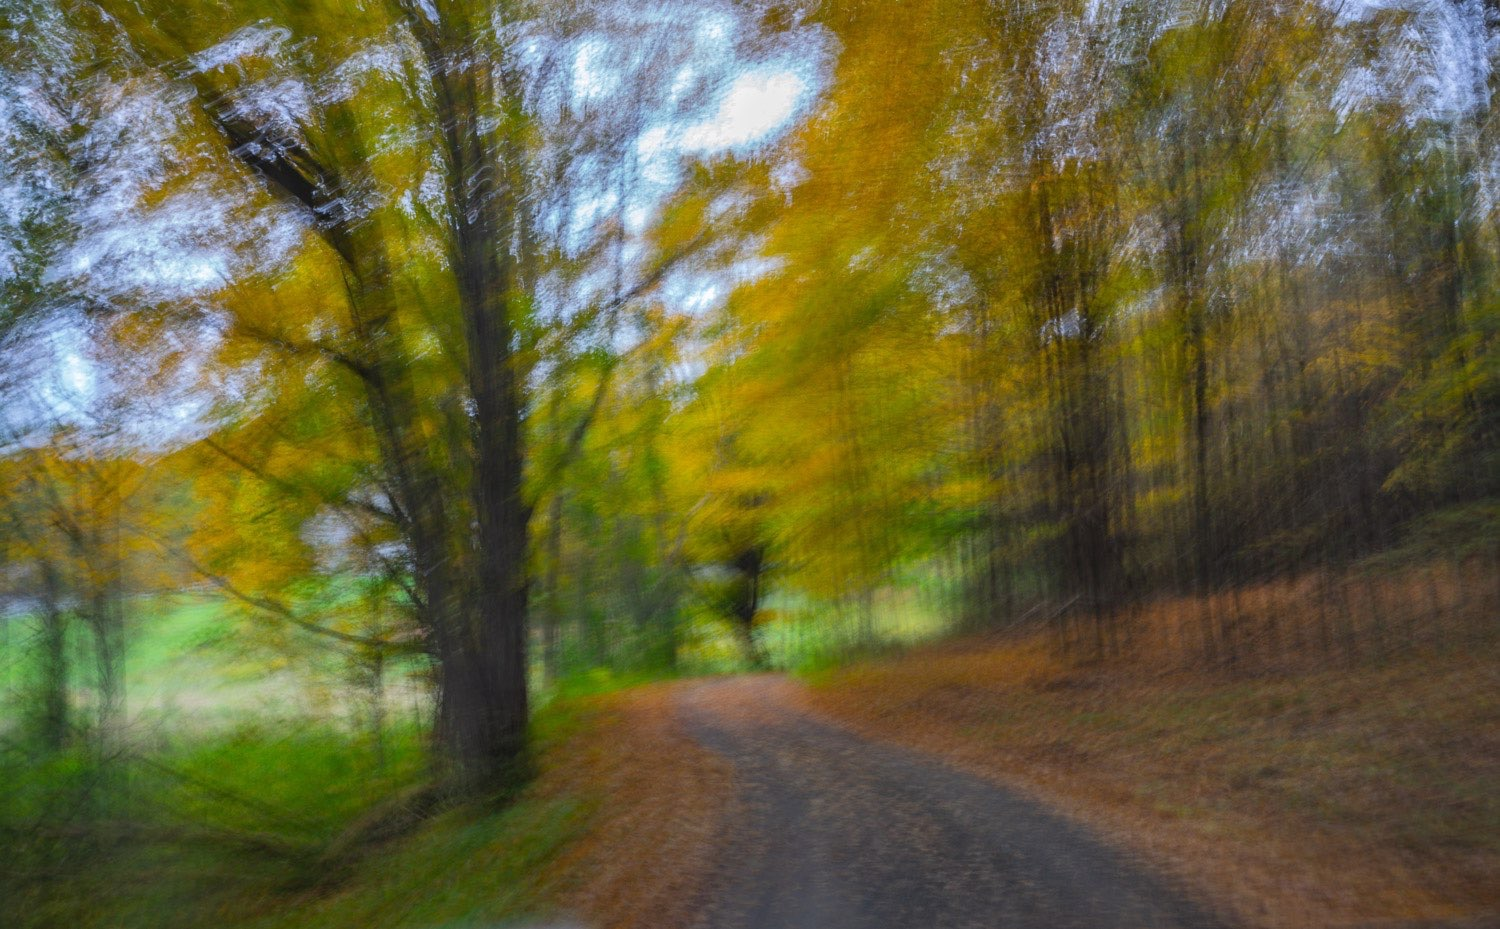 Tranquil abstract photograph with blurred movement  of a country road in the autumn. fall.  johnstuartstudio-compress.jpg